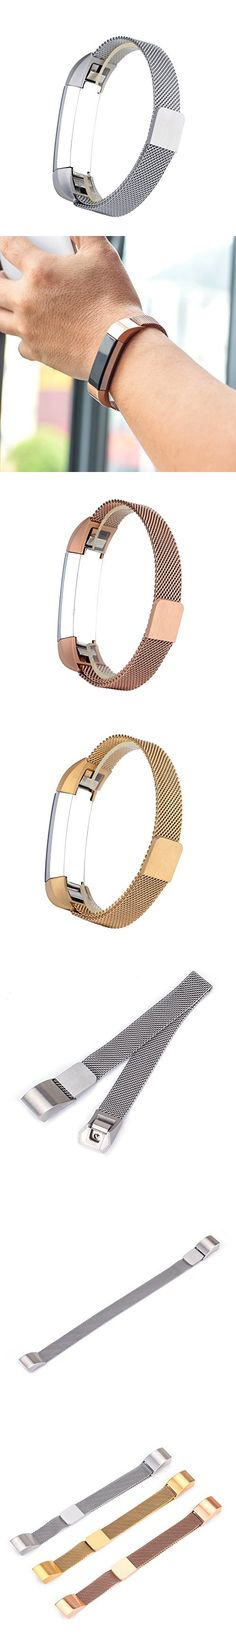 Adjustable 316L Stainless Steel Milanese Magnetic Loop Watchband Replacement Accessory Bracelet Strap fit for Fitbit Alta HR Band Tracker (Silver)